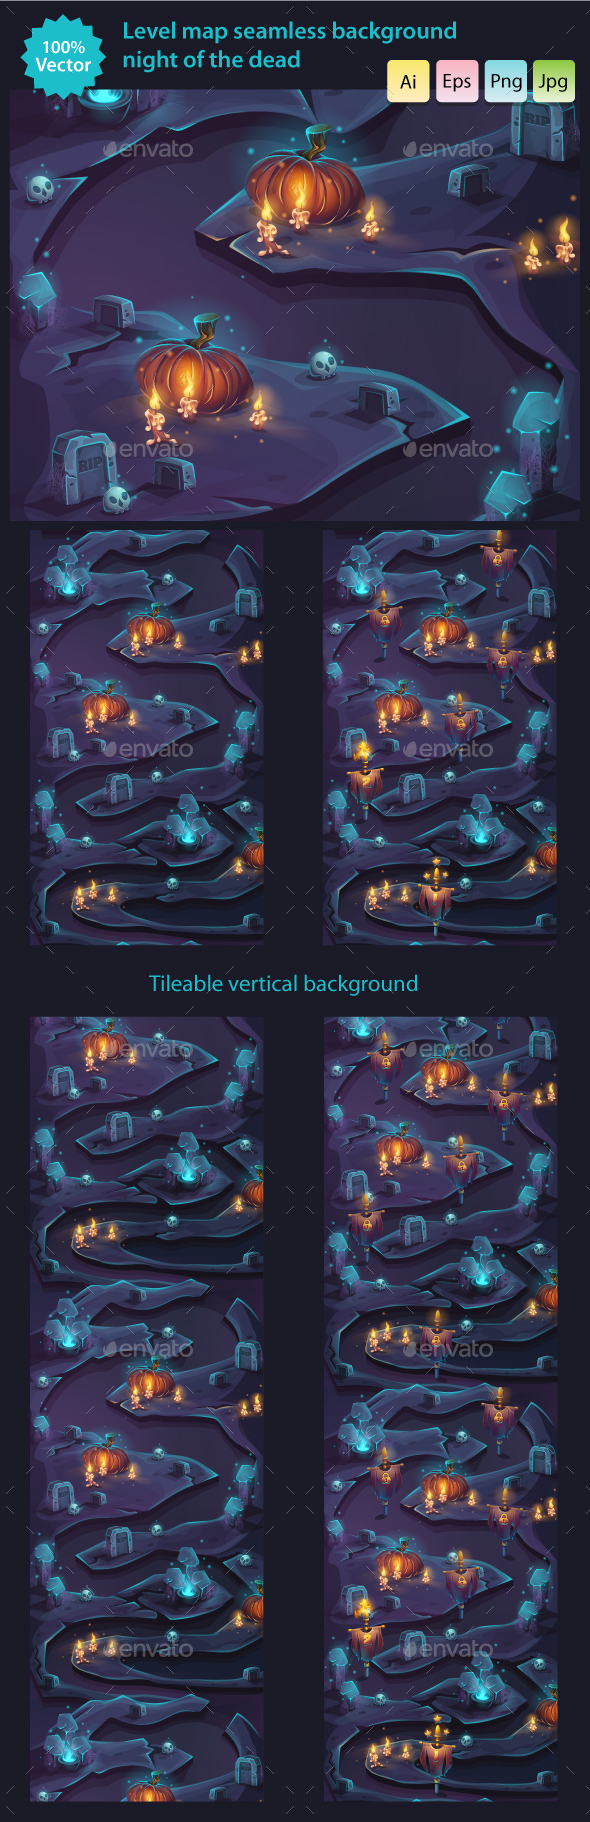 Night of the Dead - Seamless Background Level Map - Backgrounds Game Assets